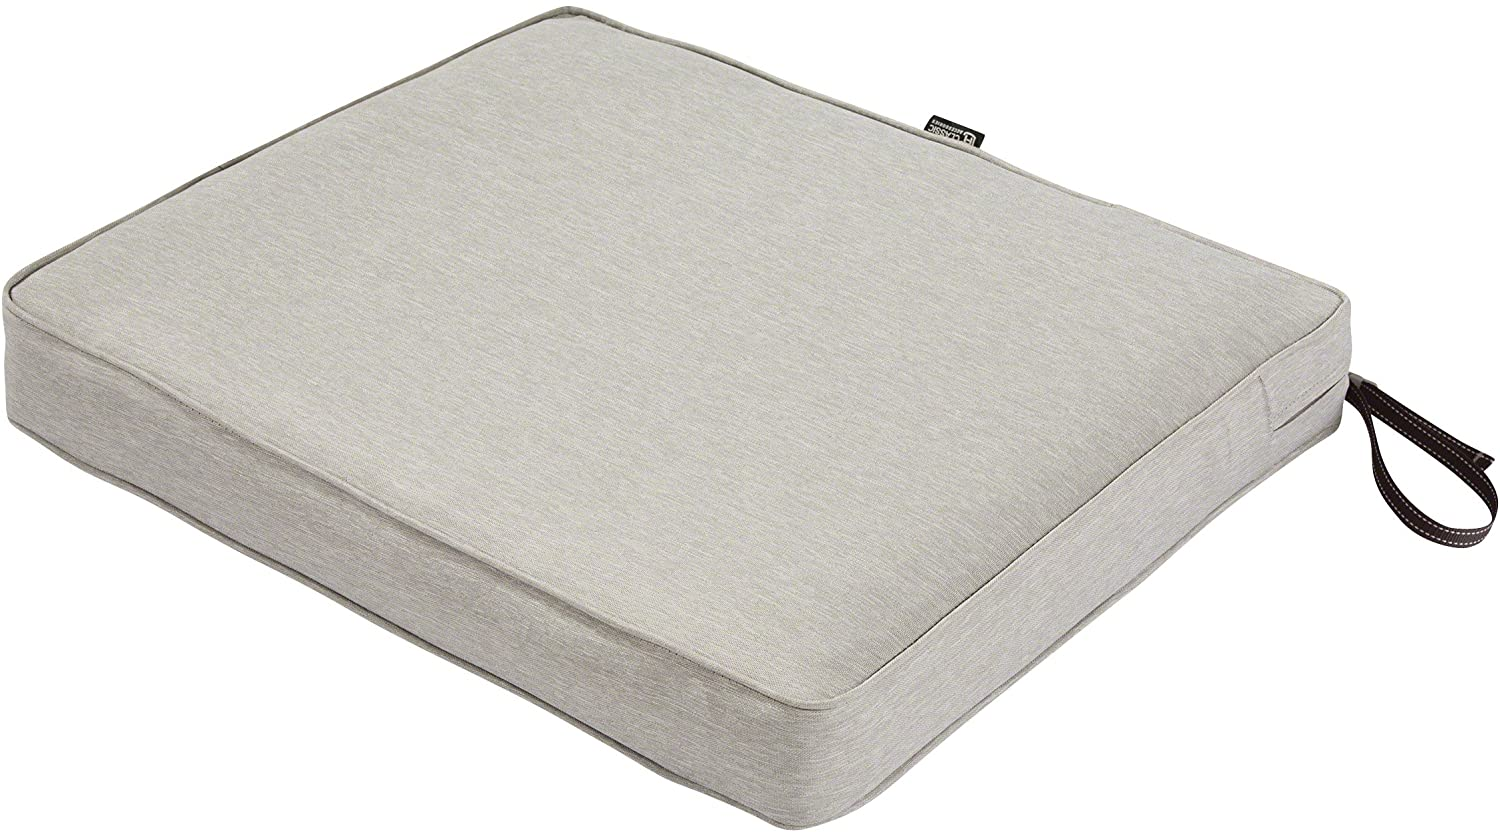 Classic Accessories Montlake Water-Resistant 21 x 19 x 3 Inch Patio Seat Cushion, Heather Grey